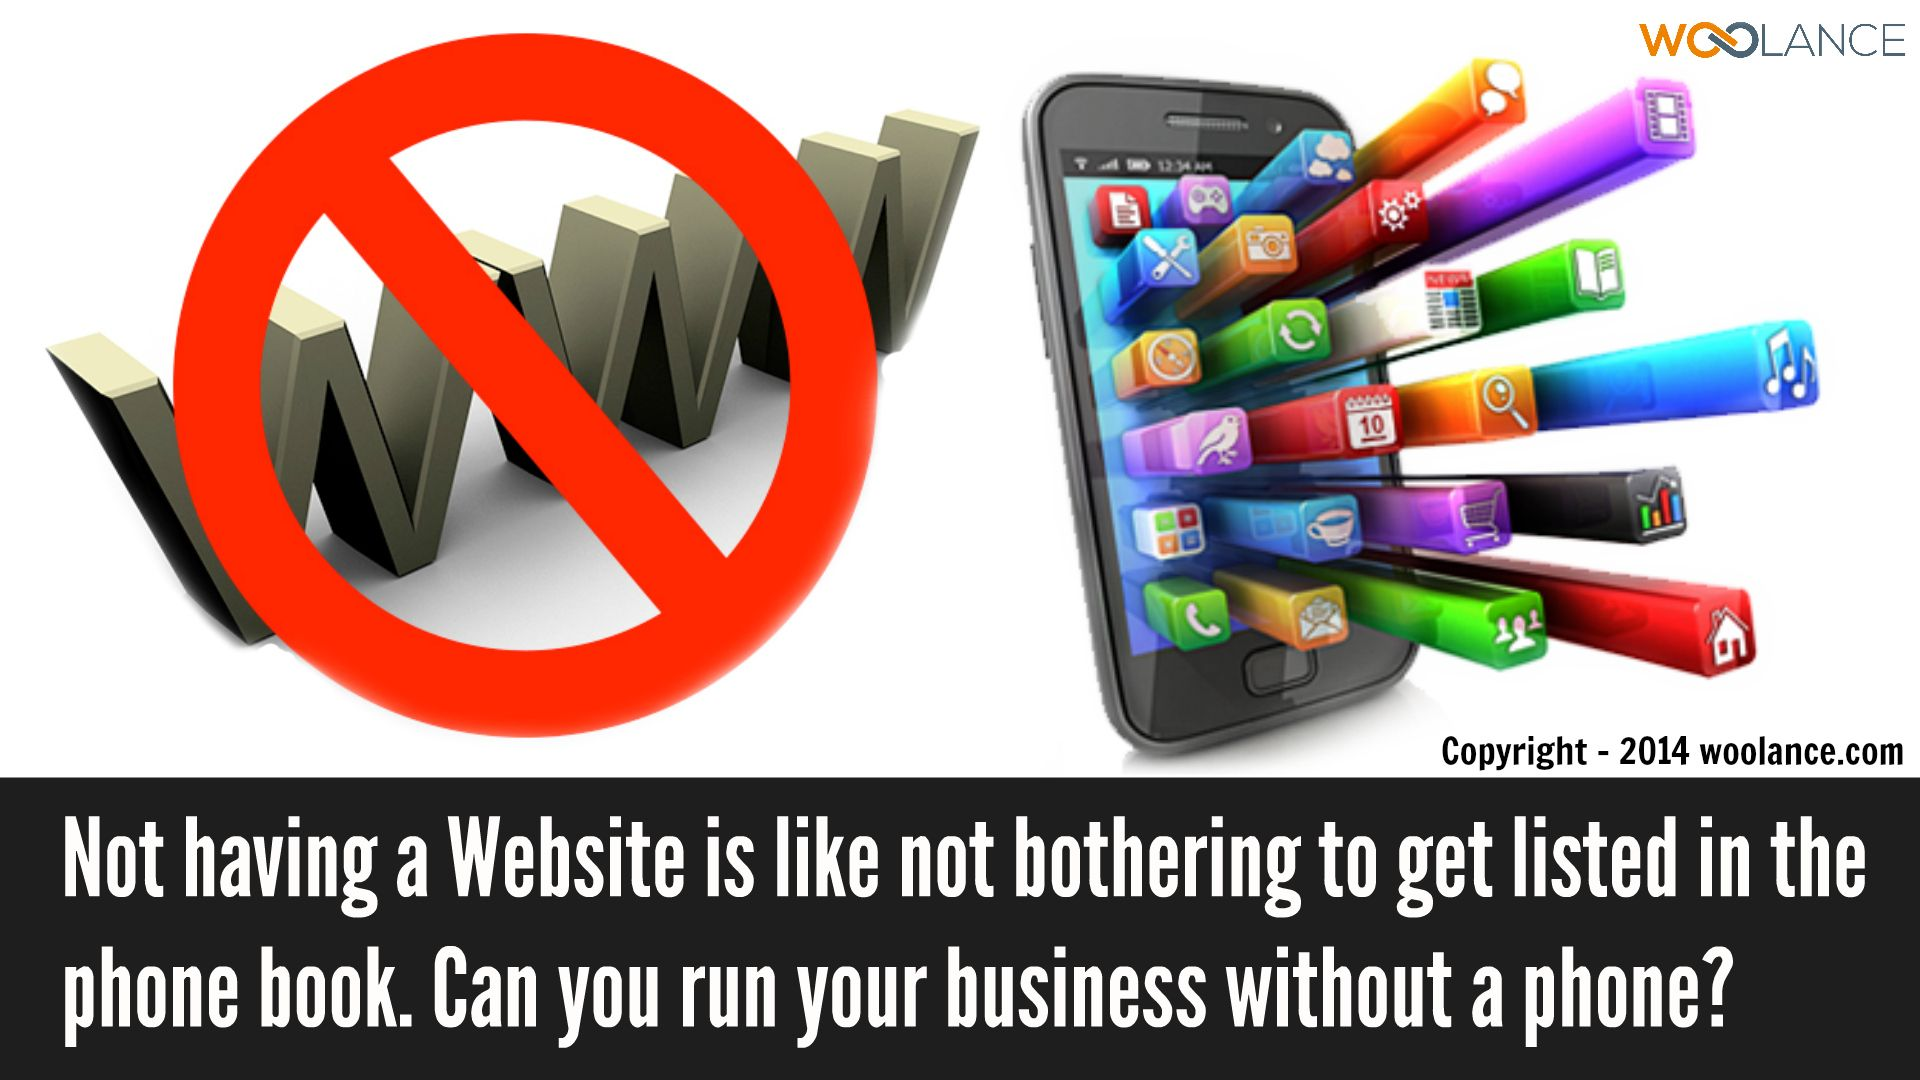 Not having a Website is like not bothering to get listed in the phone book. Can you run your business without a phone? - Woolance #Webdesign https://www.woolance.com/service/website-and-software-and-development